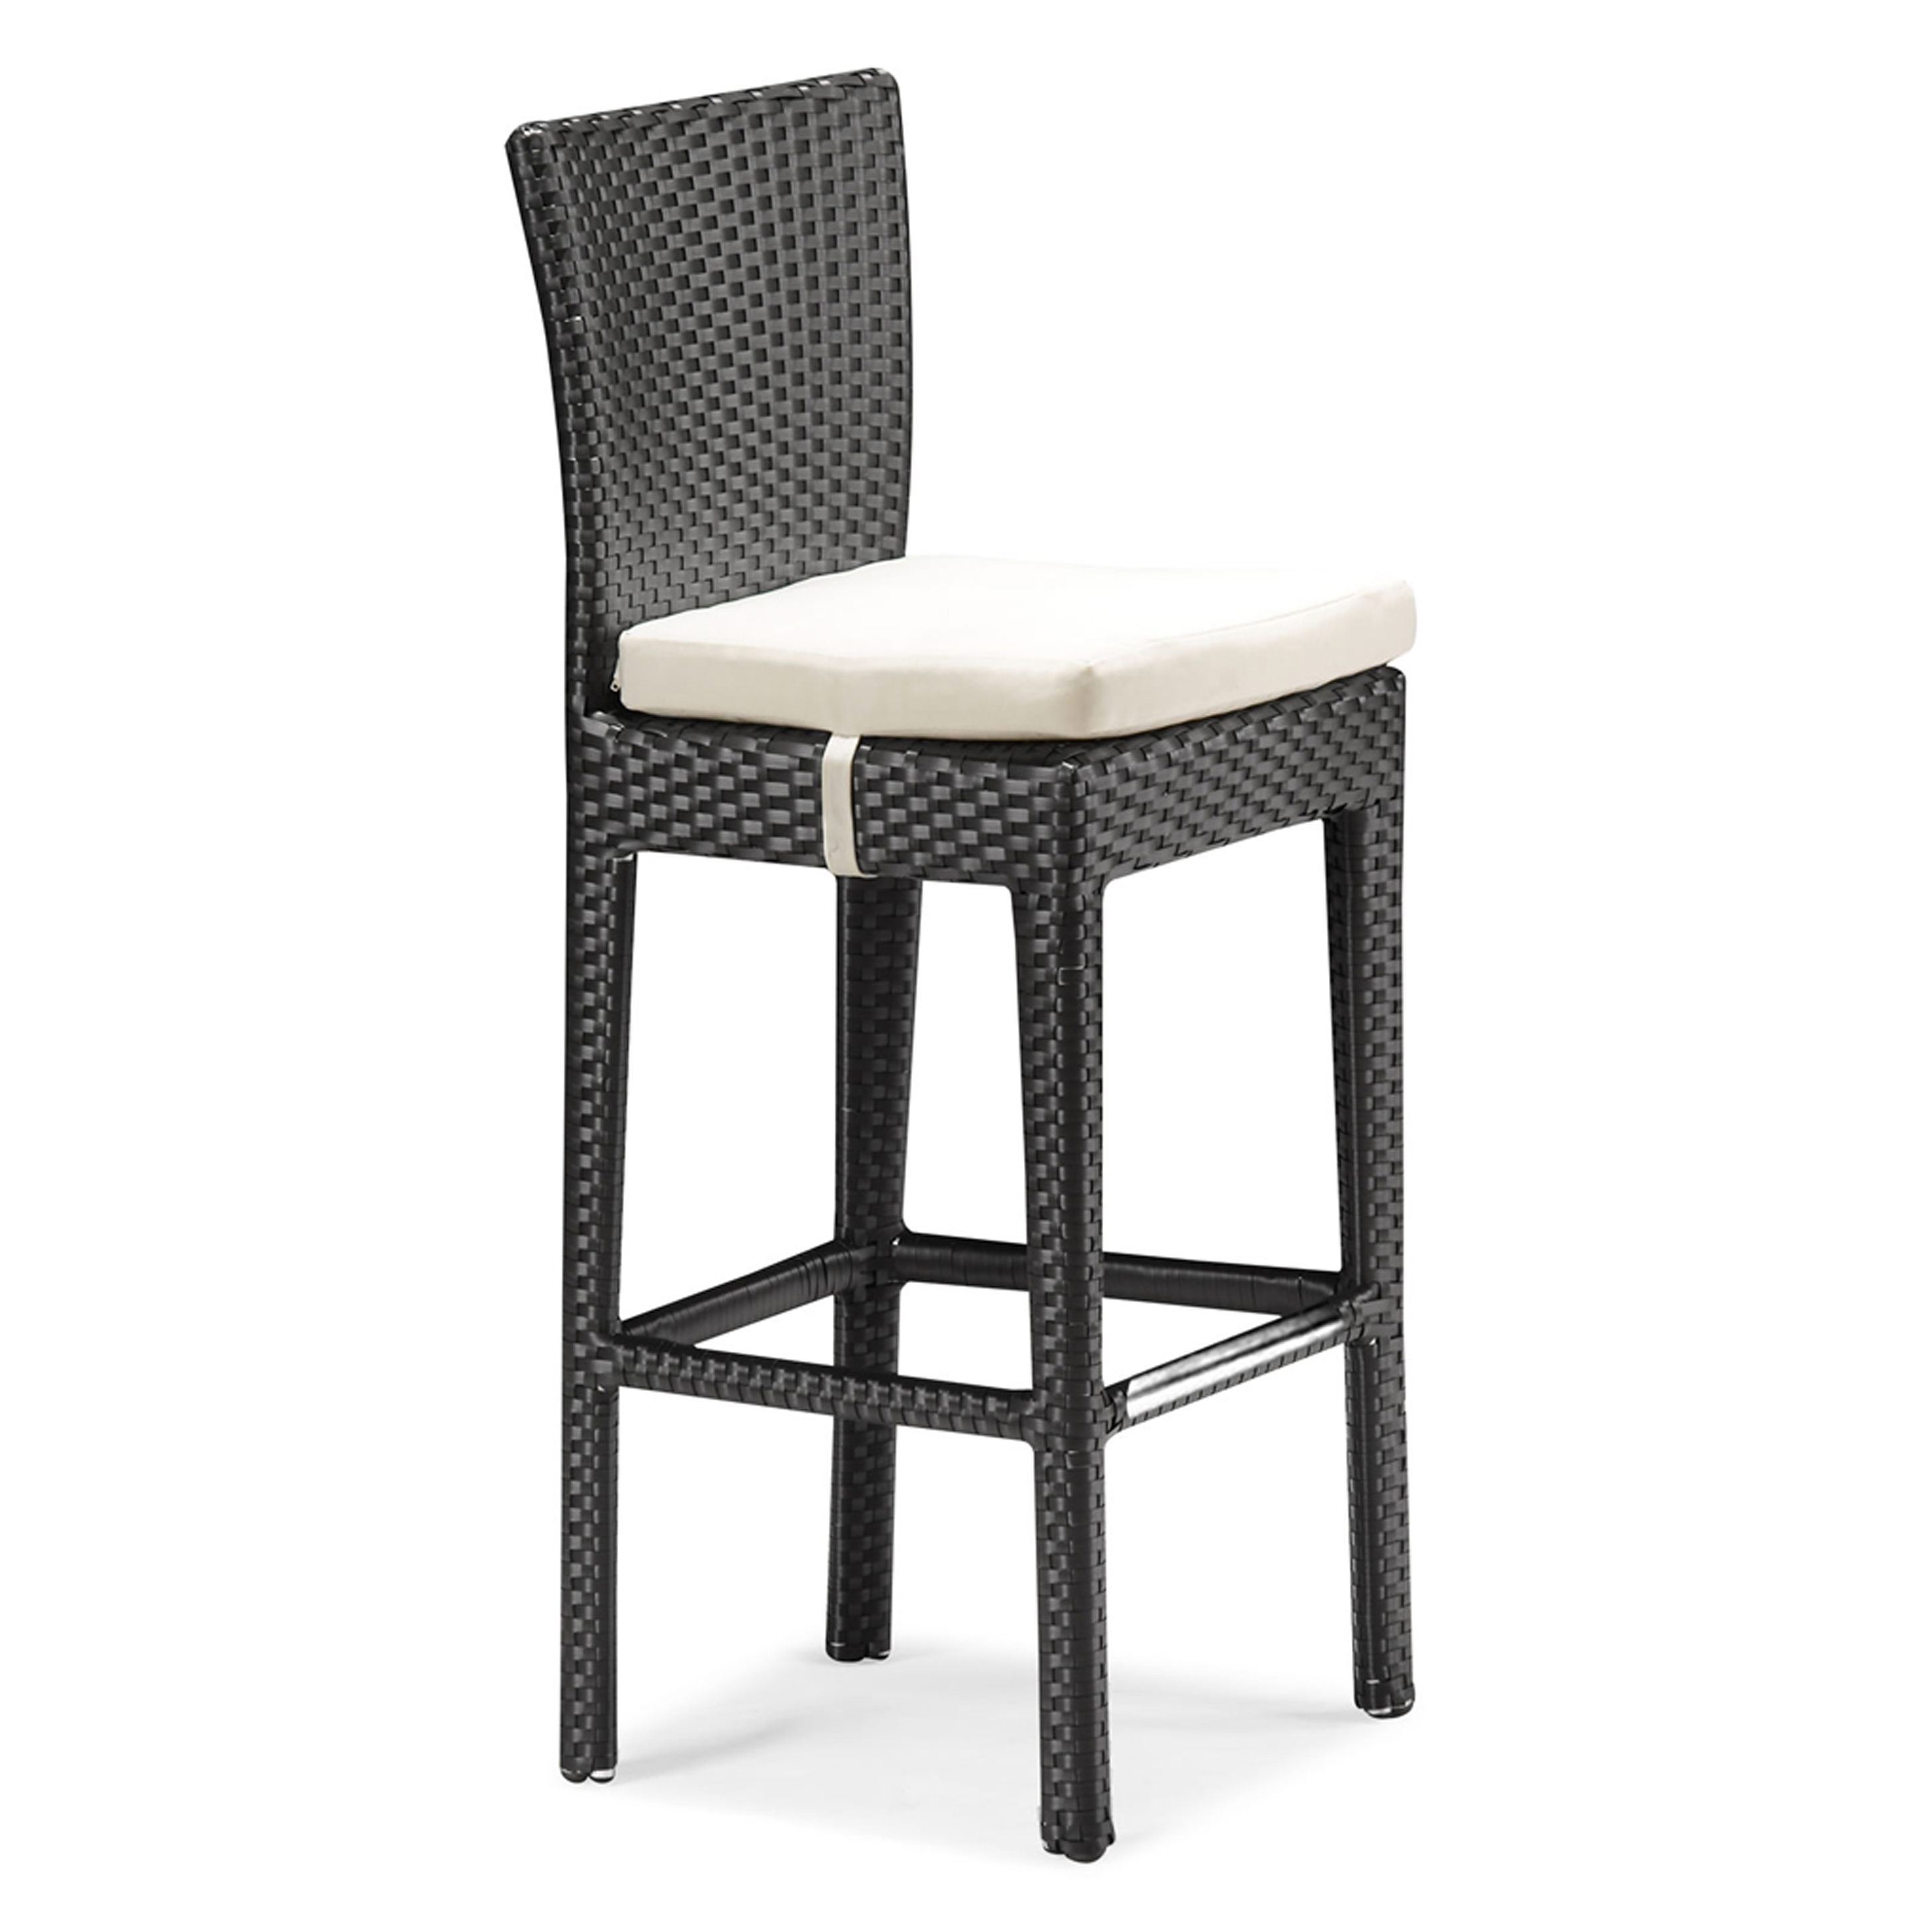 Amazing Zuo Modern Outdoor Design Idea With Black Barstool With White Seat Cushion Interesting Zuo Modern Outdoor Design Ideas (View 9 of 28)